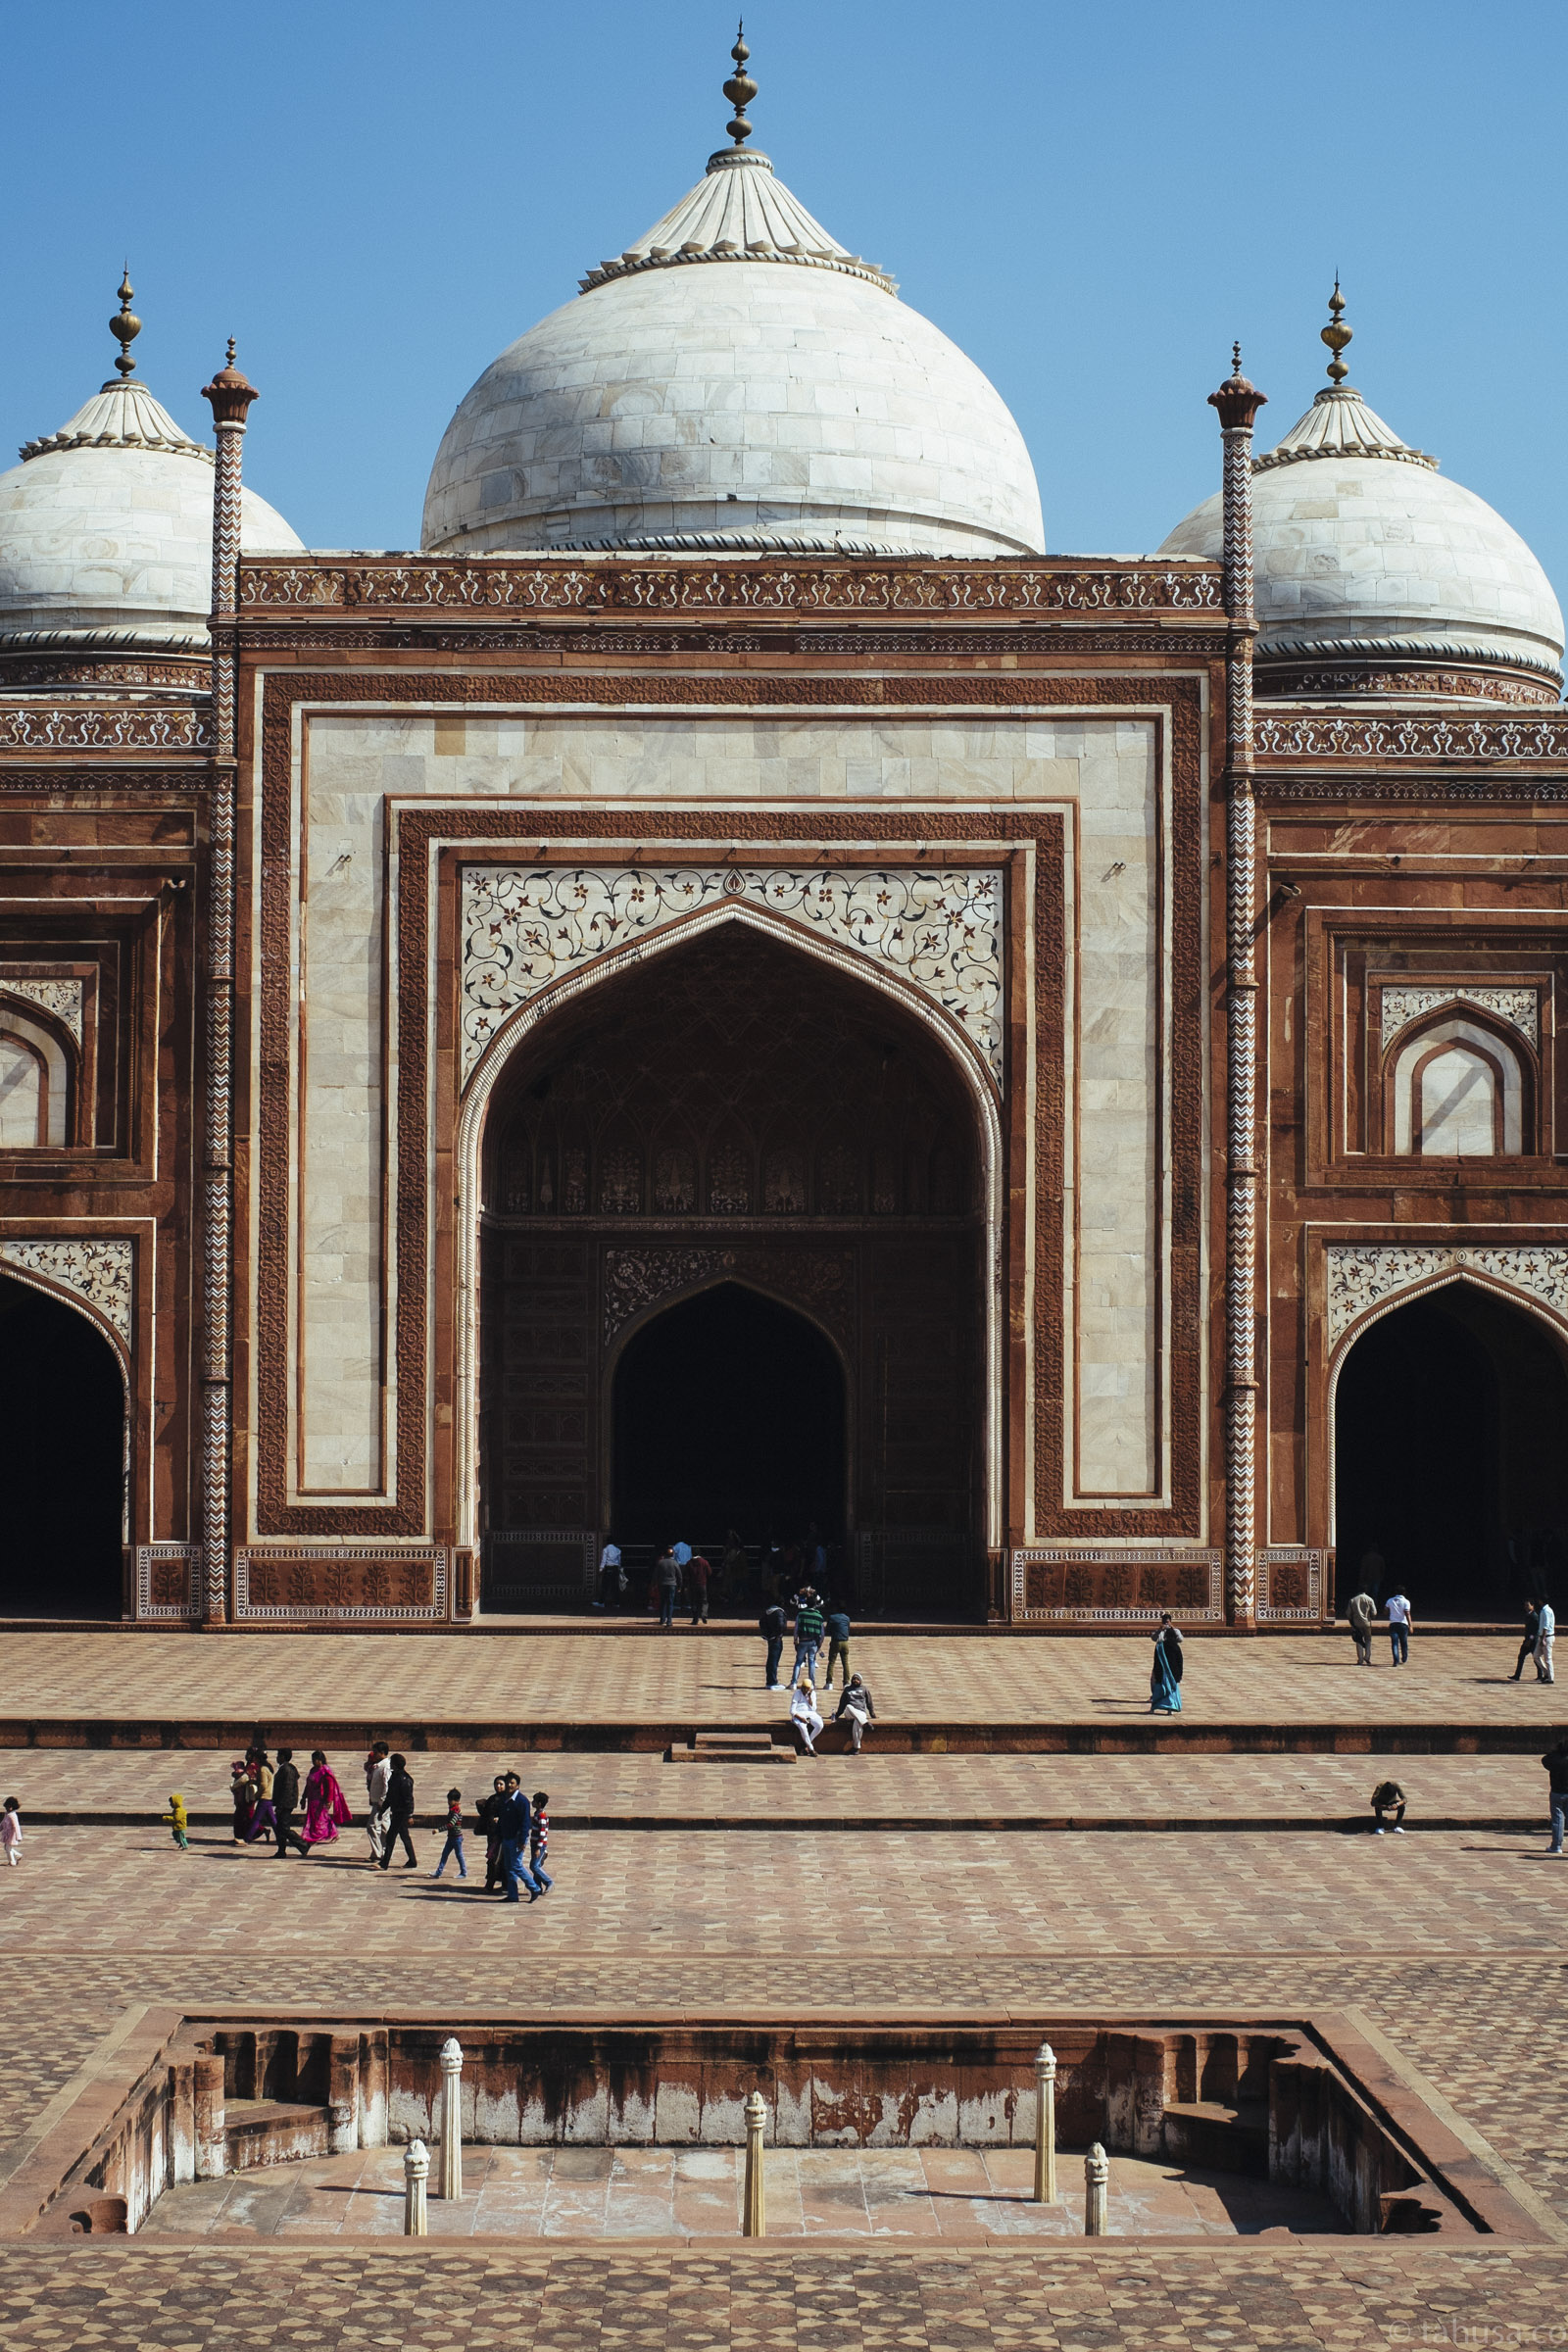 Tajmahal-seven-wonder-world-agra-fort-scenic-attraction-city-scanner-cities-snap